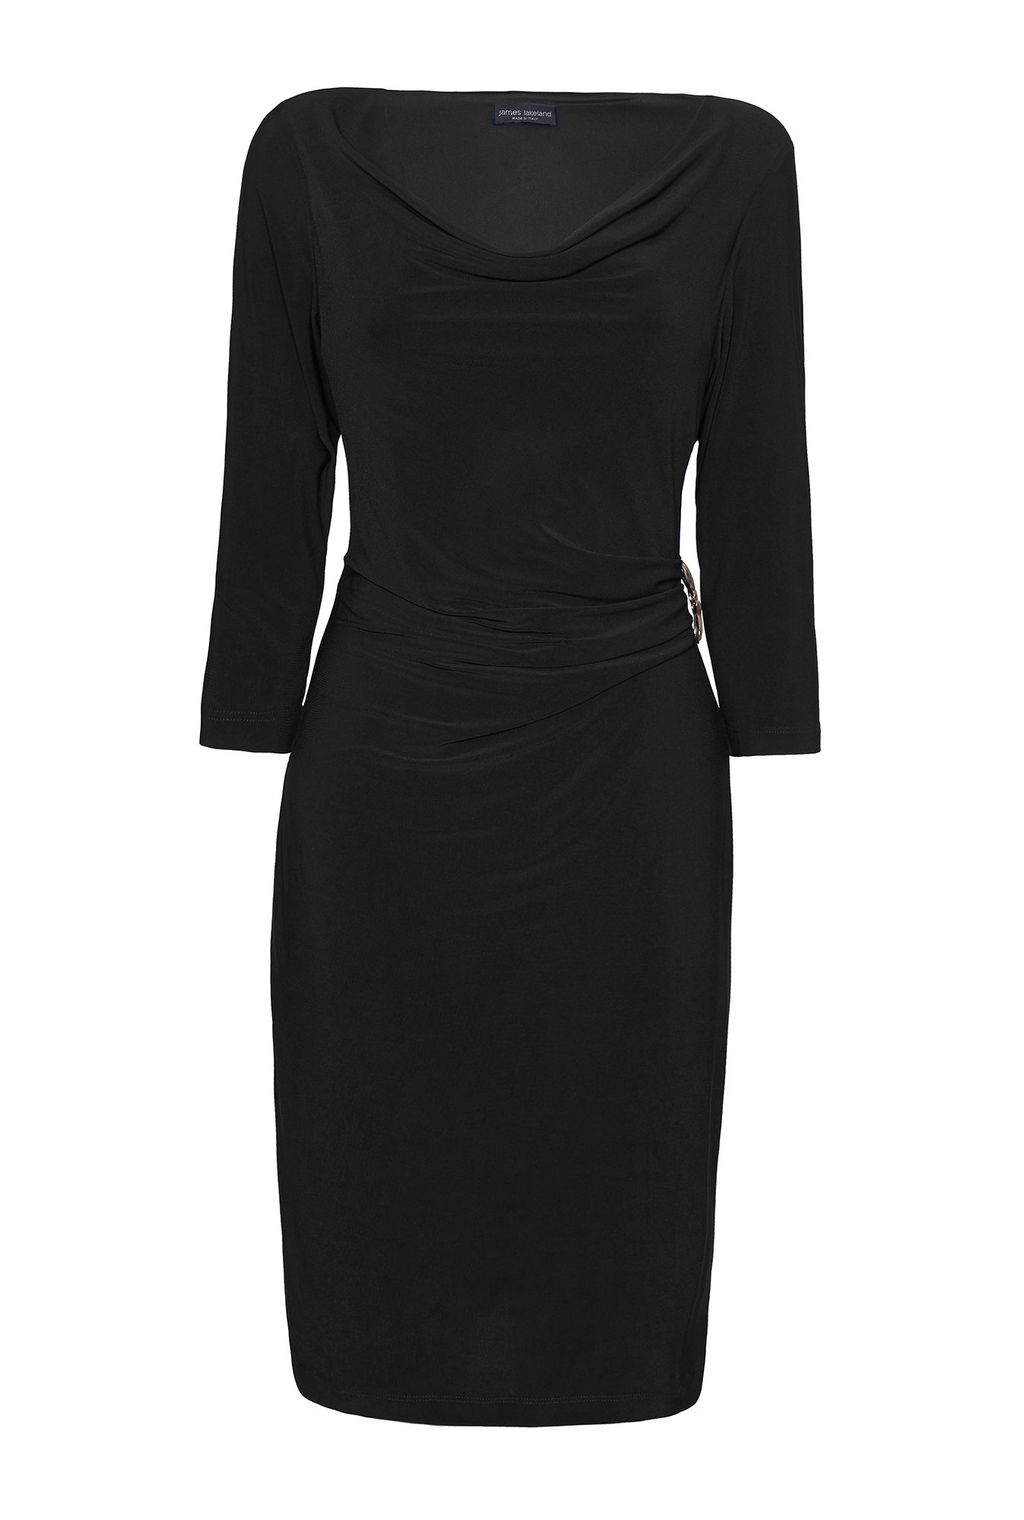 3/4 Sleeve Side Ruched Dress, Black - style: shift; neckline: cowl/draped neck; pattern: plain; waist detail: flattering waist detail; hip detail: draws attention to hips; predominant colour: black; occasions: evening; length: just above the knee; fit: body skimming; fibres: polyester/polyamide - stretch; sleeve length: 3/4 length; sleeve style: standard; texture group: jersey - clingy; pattern type: fabric; season: s/s 2016; wardrobe: event